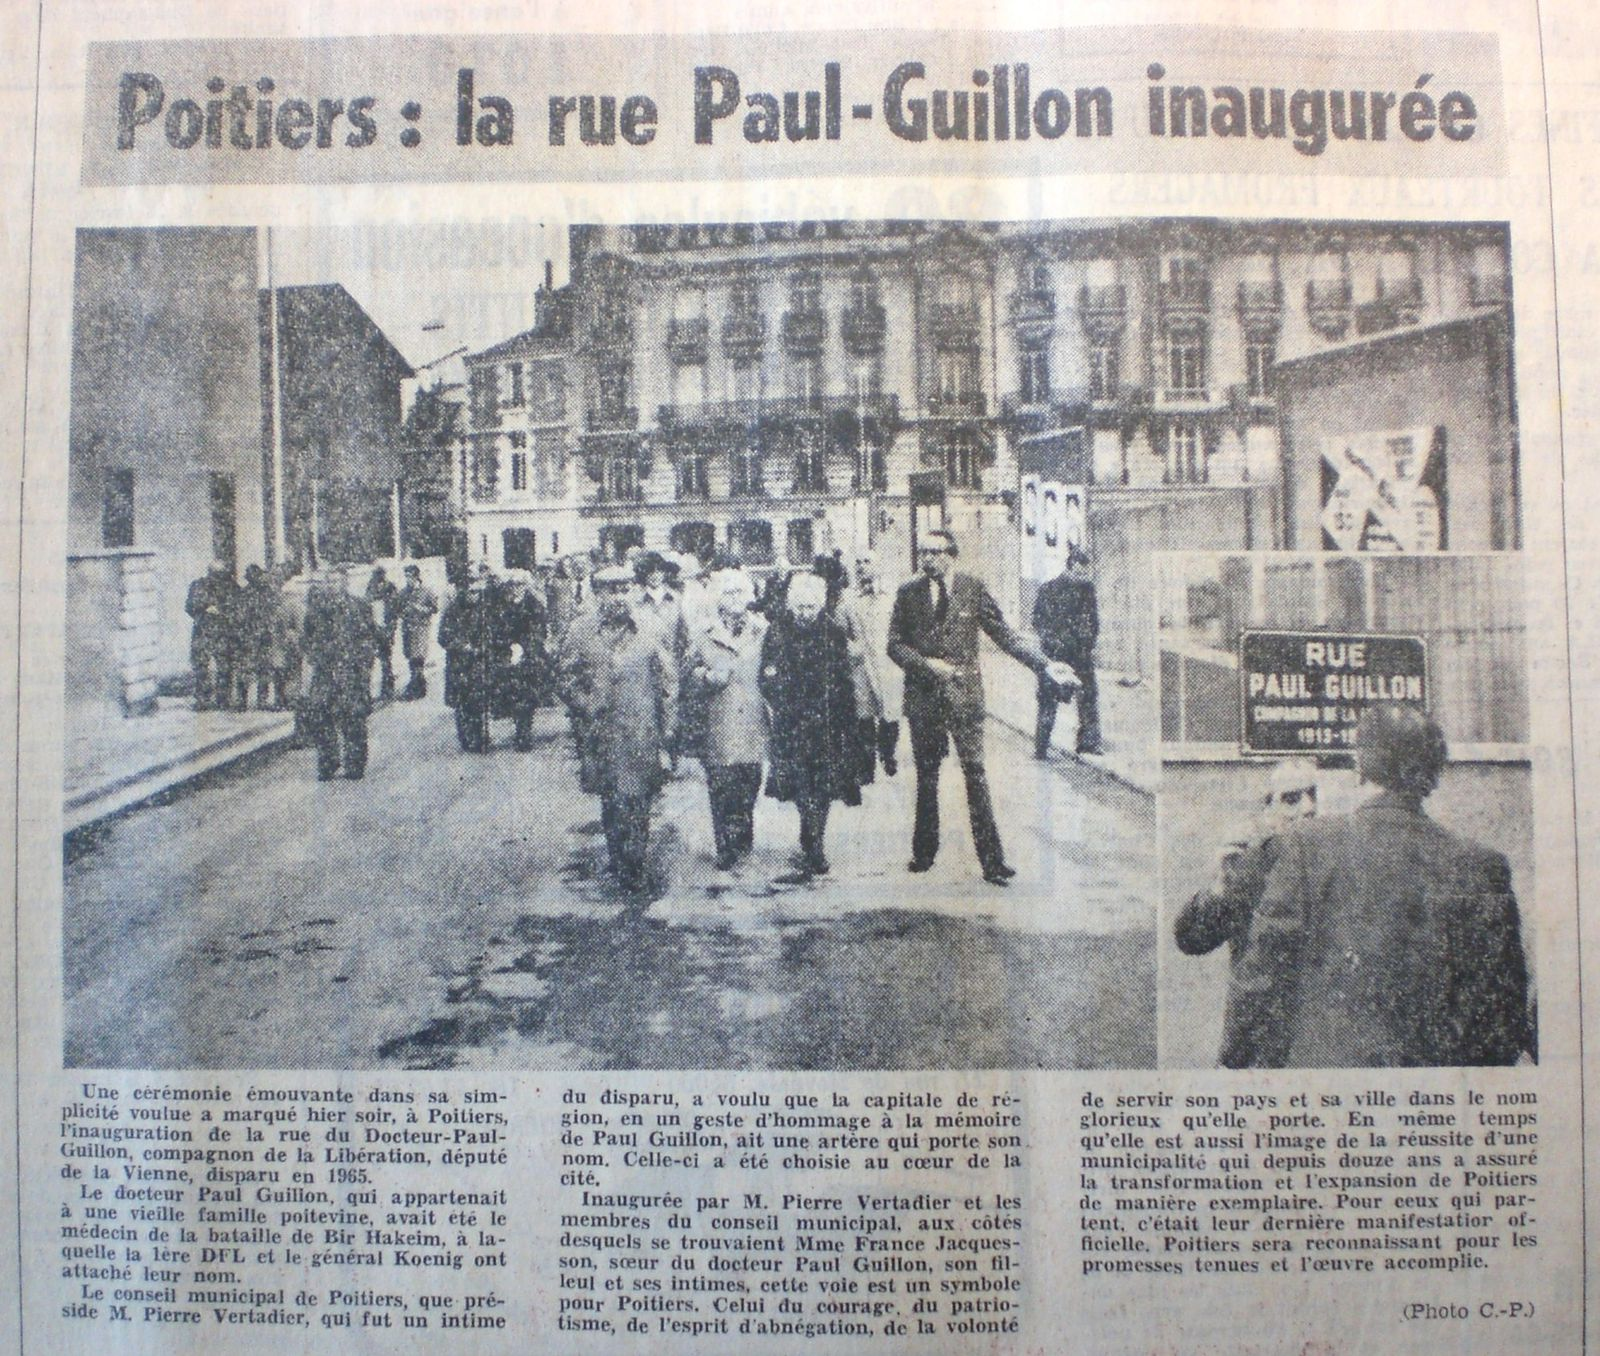 Rue-Paul-Guillon-inauguree.JPG